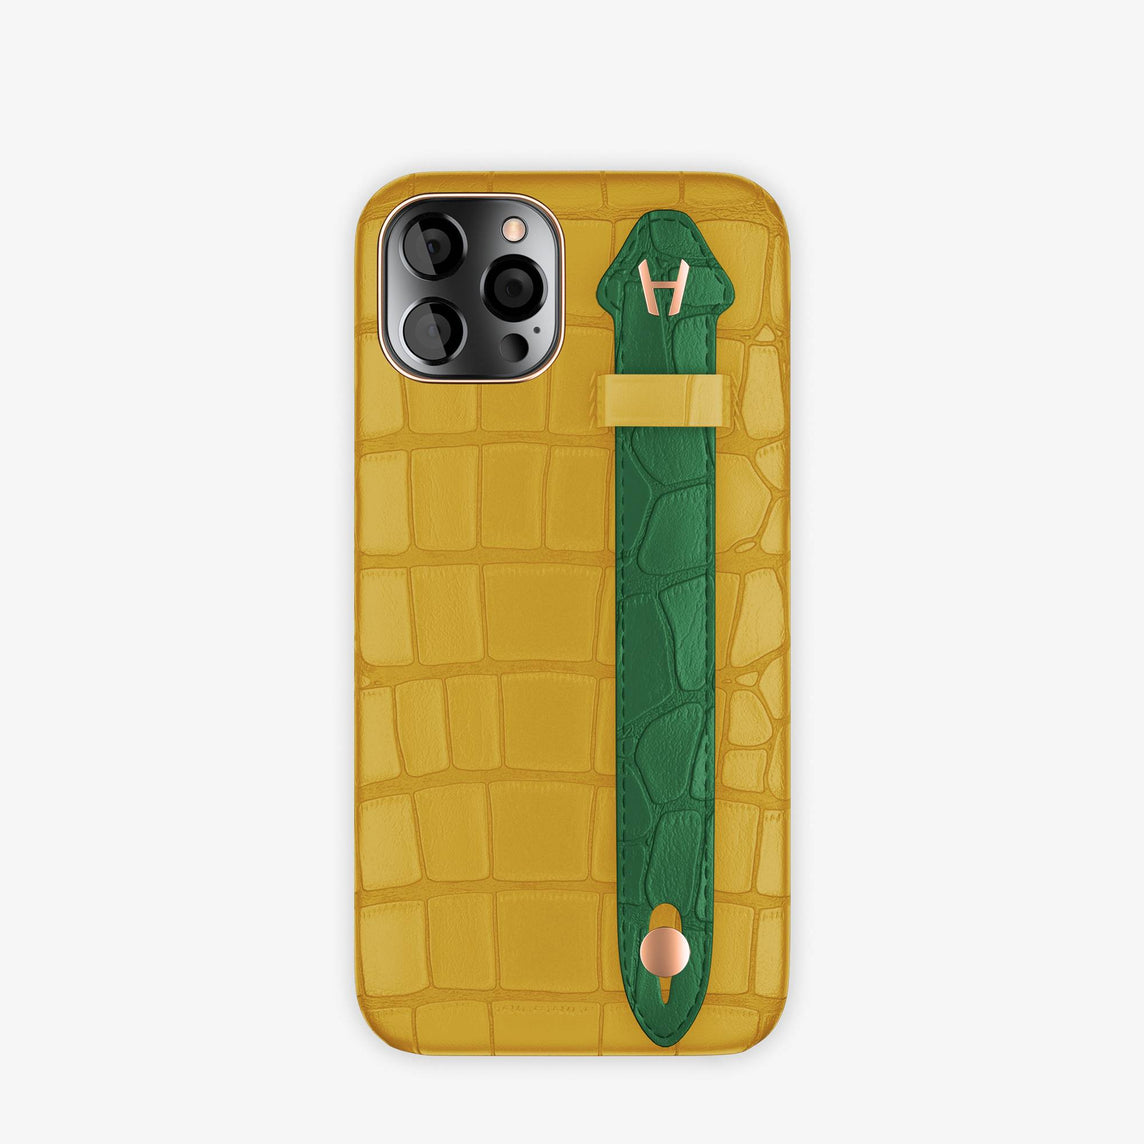 Alligator Side Finger Case iPhone 12 & iPhone 12 Pro | Yellow/Green Emerald -Rose Gold